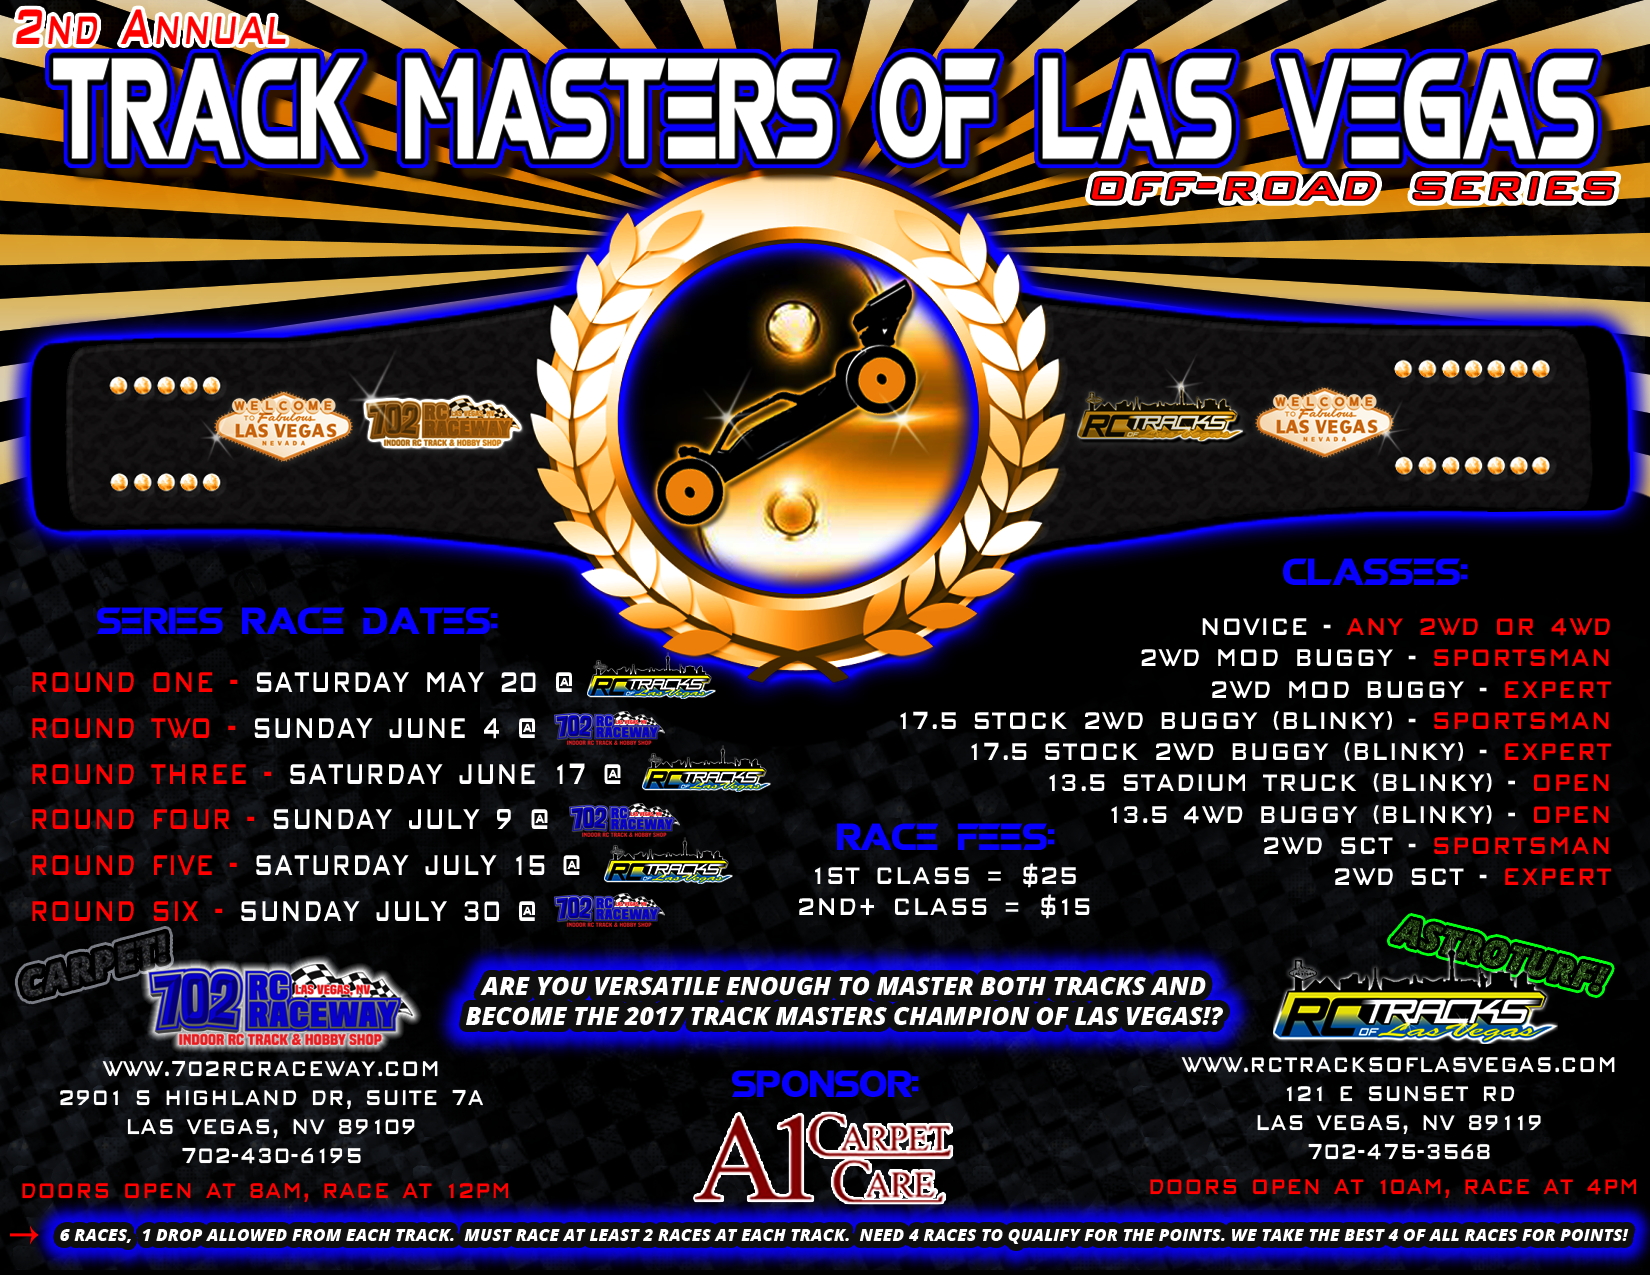 2nd Annual Track Masters of Las Vegas Off-Road Series